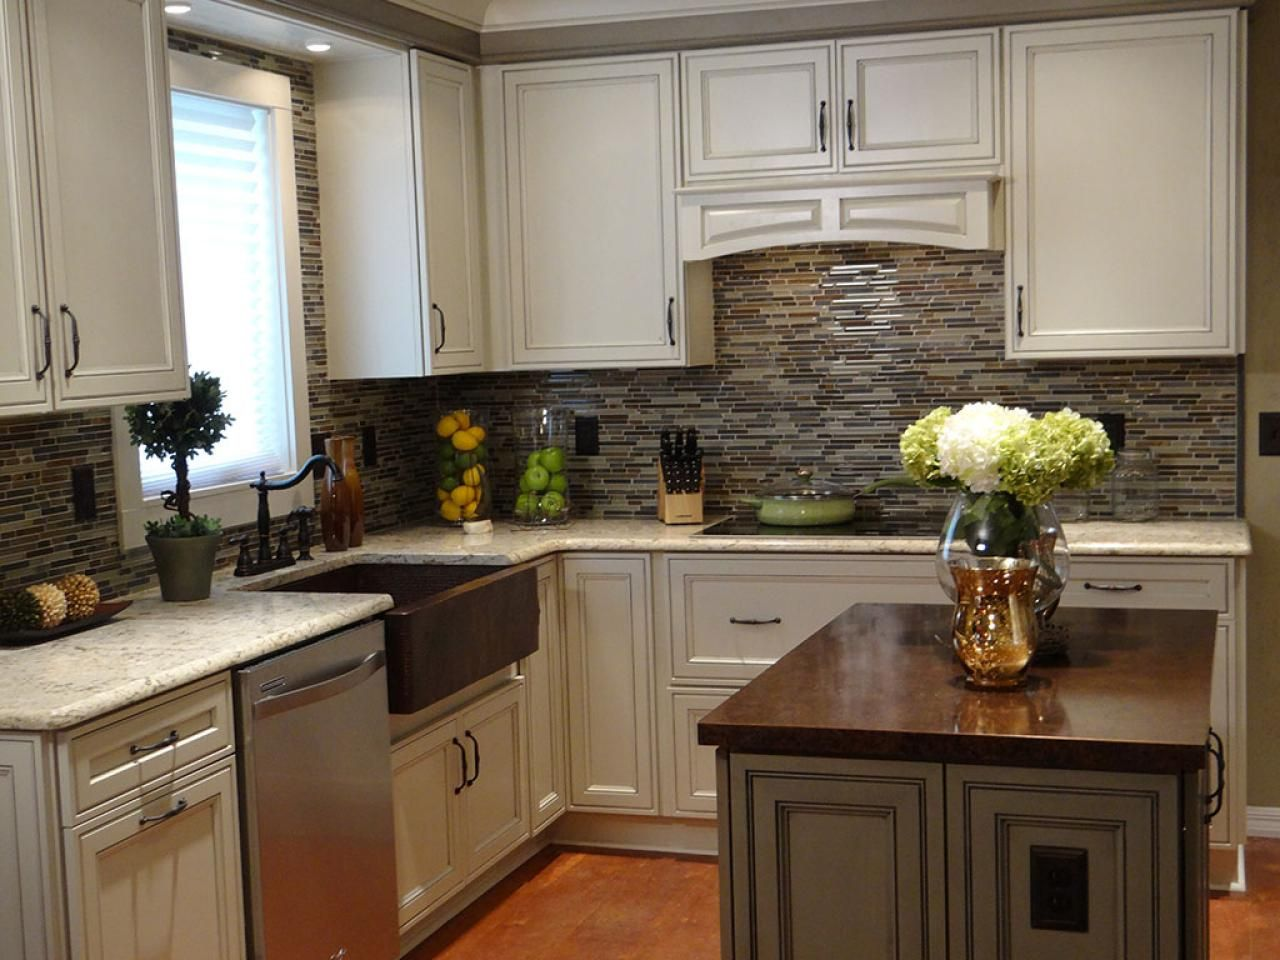 20 small kitchen makeovers by hgtv hosts kitchen designs on kitchen remodeling ideas and designs lowe s id=95663